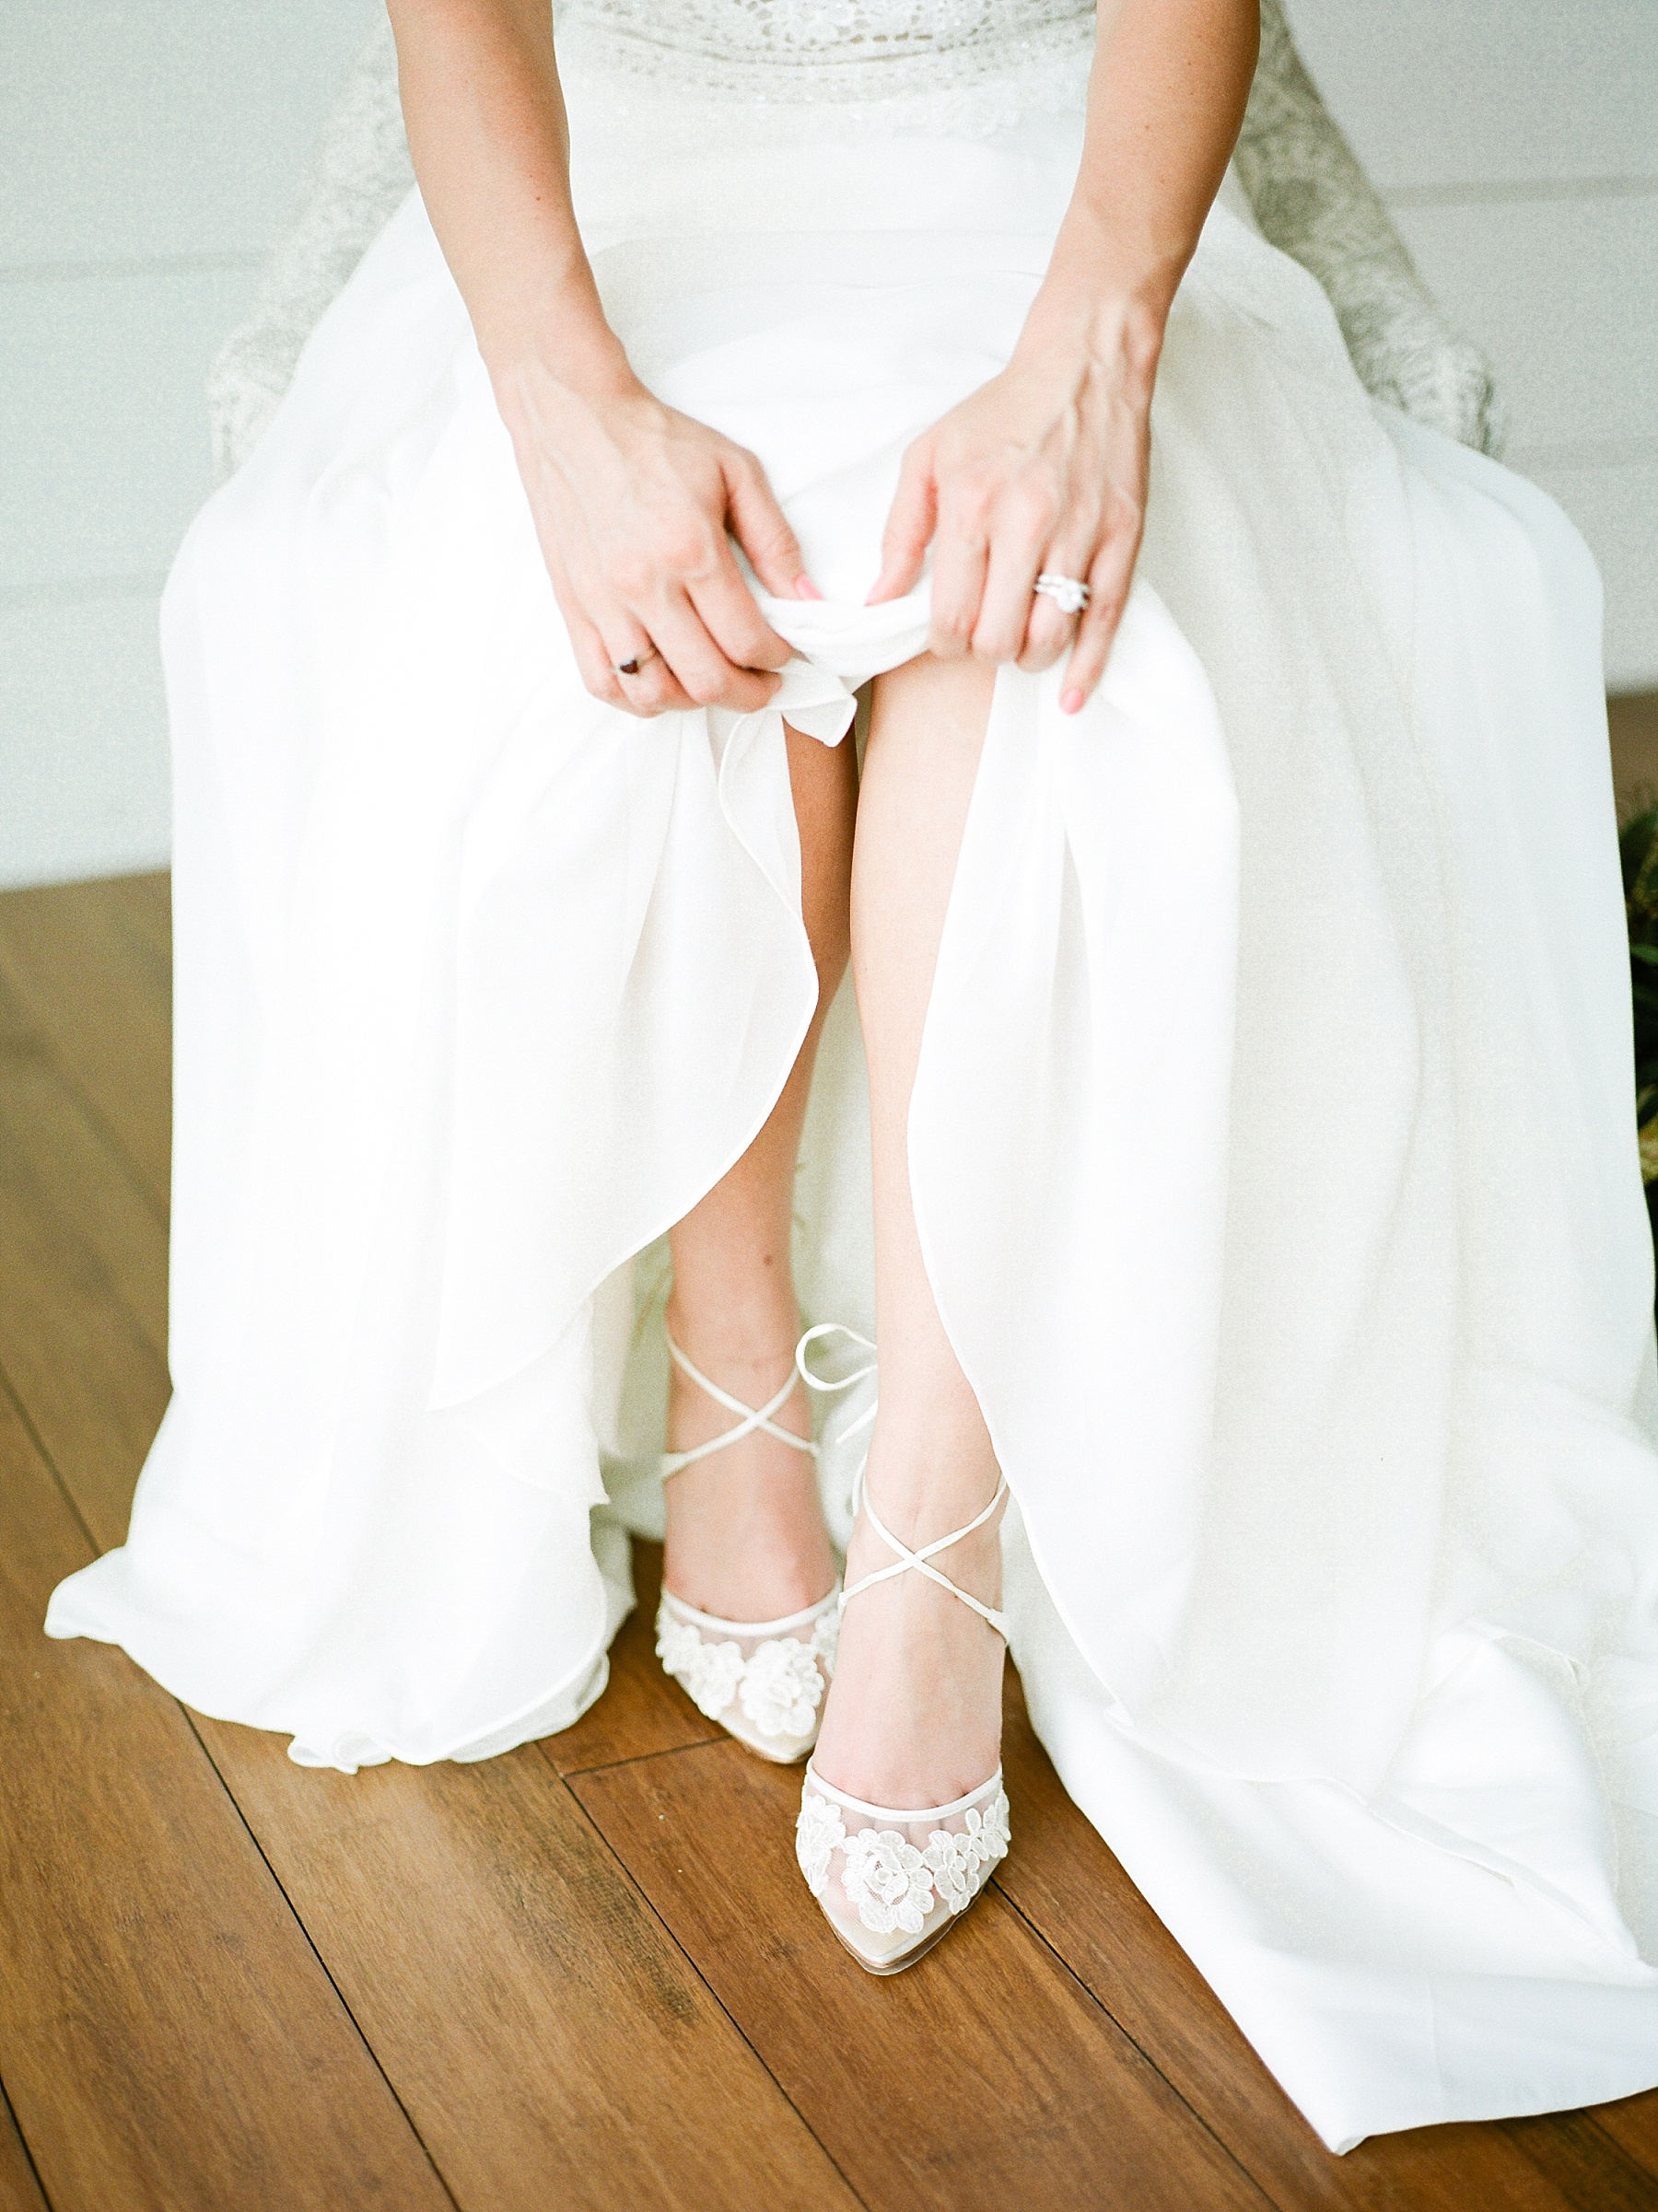 Textural Organic Wedding in All White Venue by Kelsi Kliethermes Wedding Photographer - Missouri, Midwest, and Destinations_0026.jpg